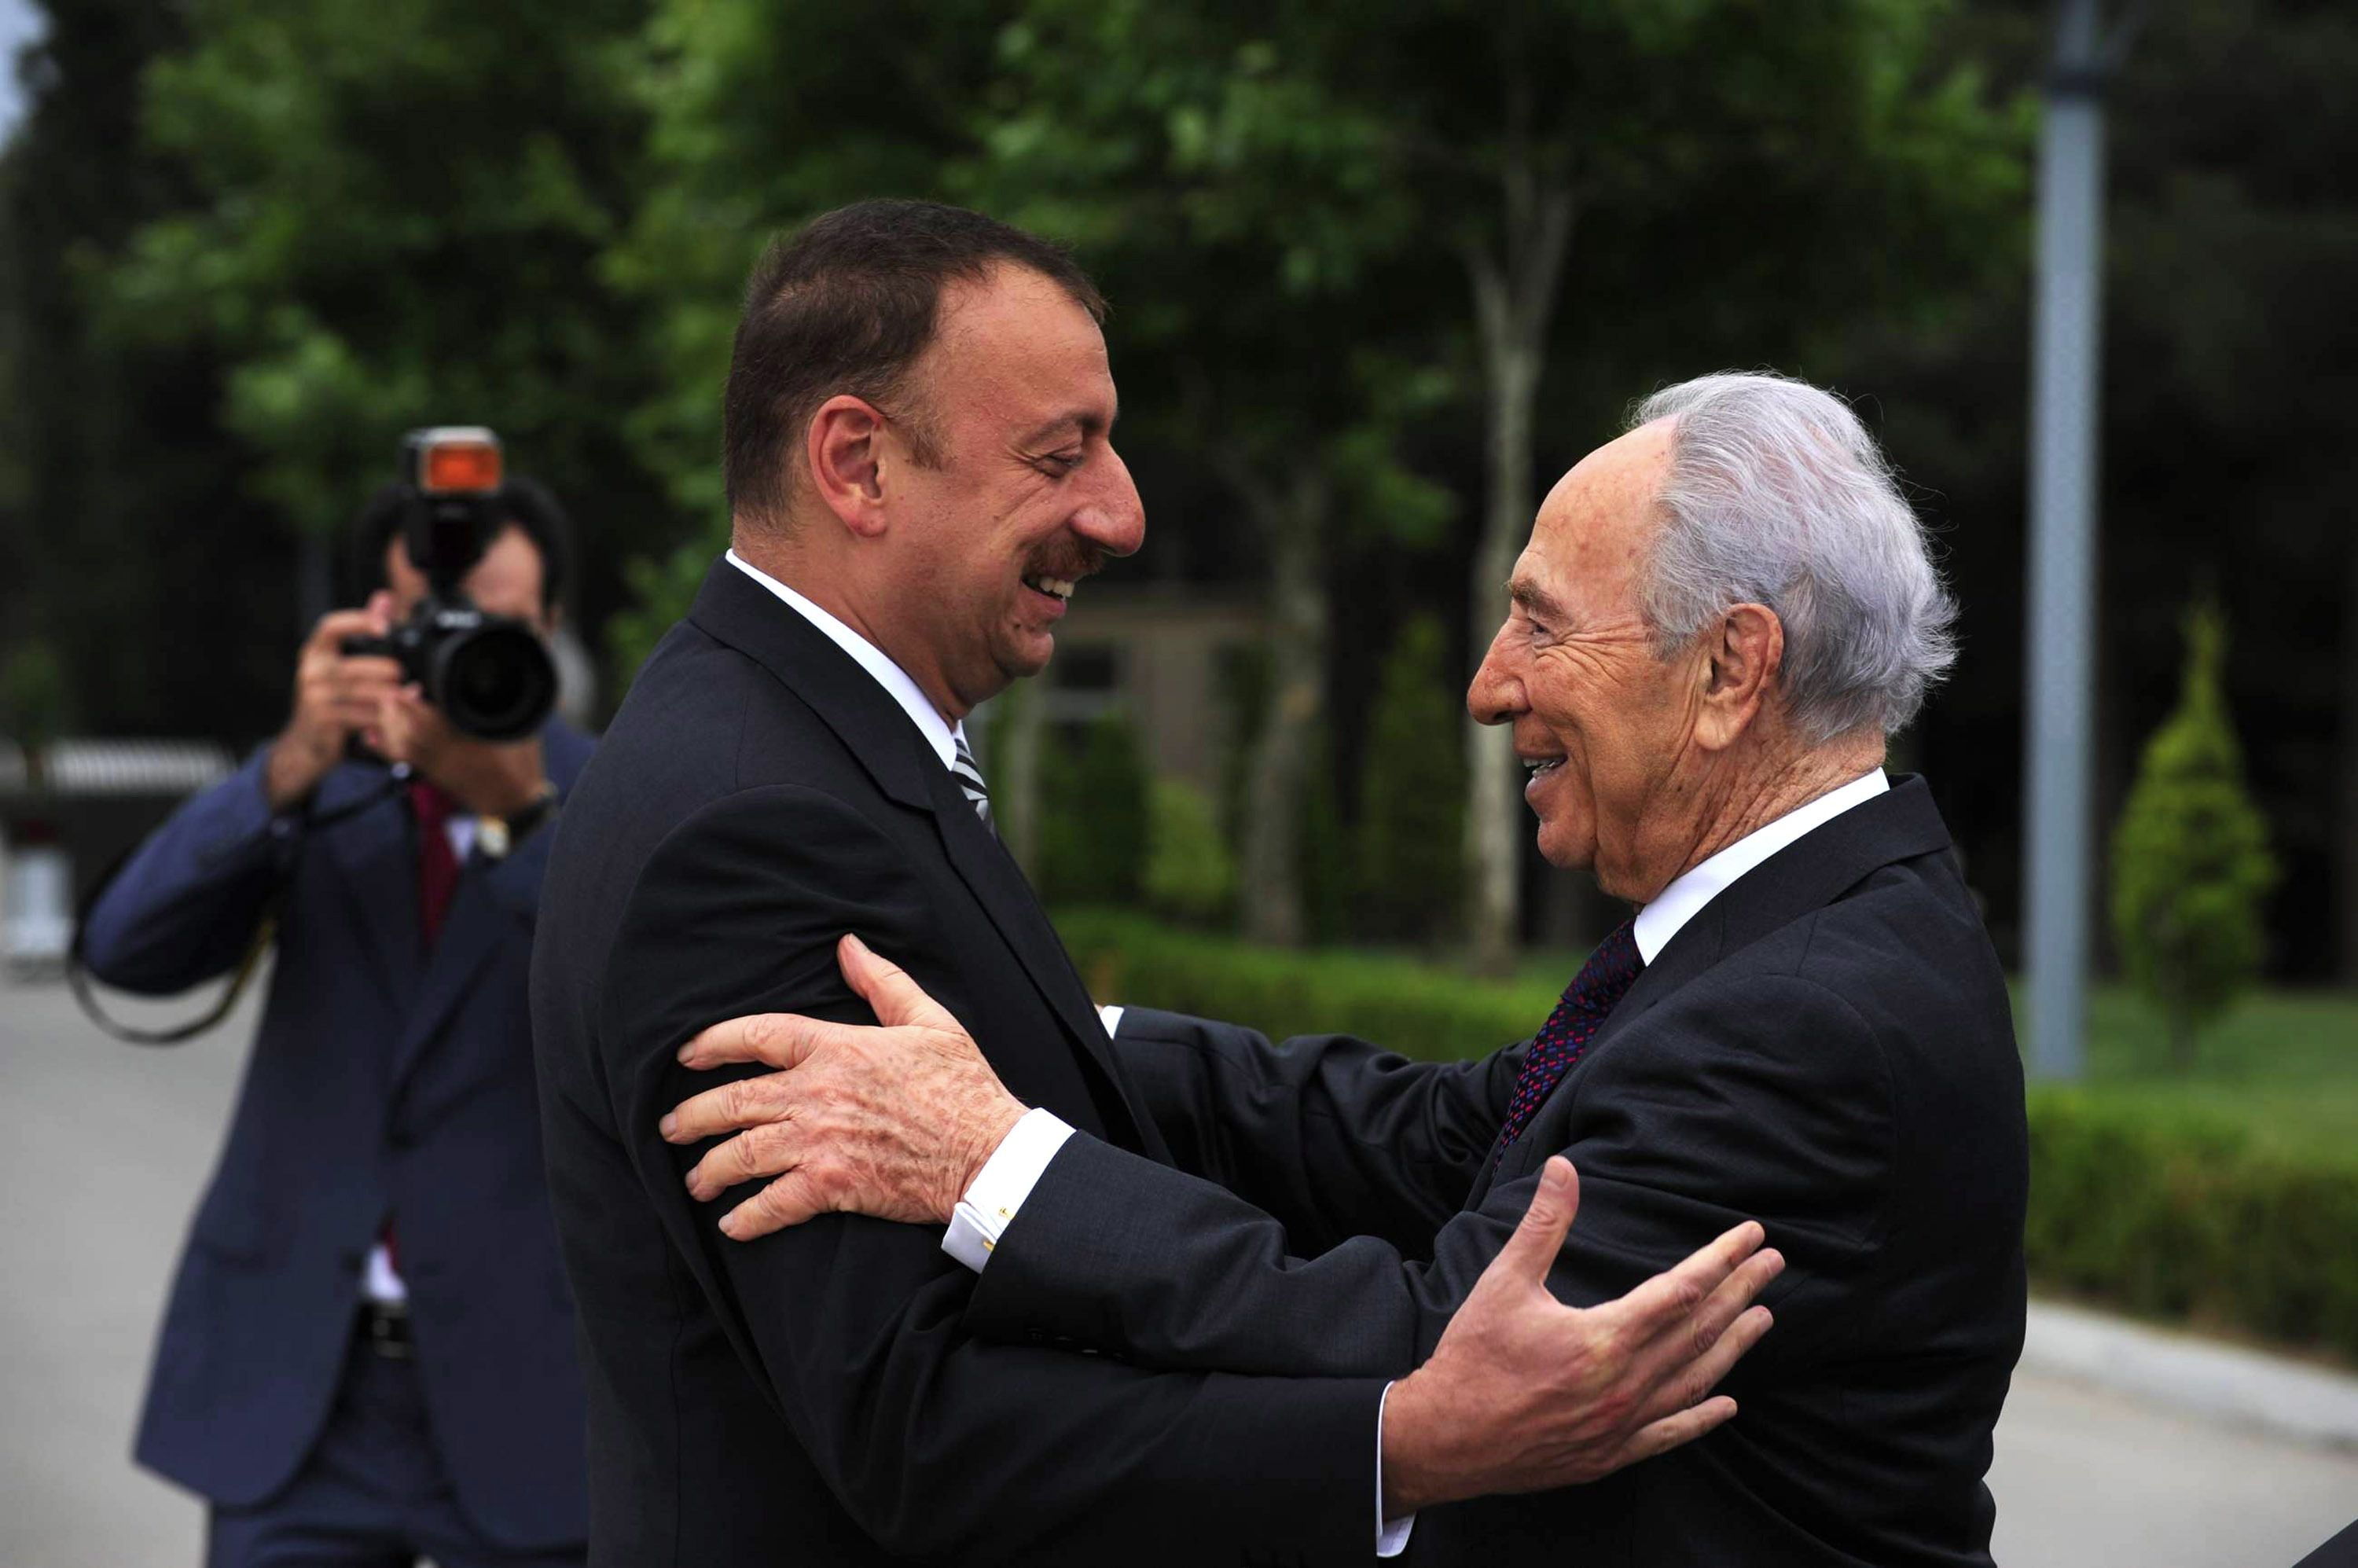 Israel's then president, Shimon Peres (right), embraces the president of Azerbaijan, Ilham Aliyev, on a visit in 2009.